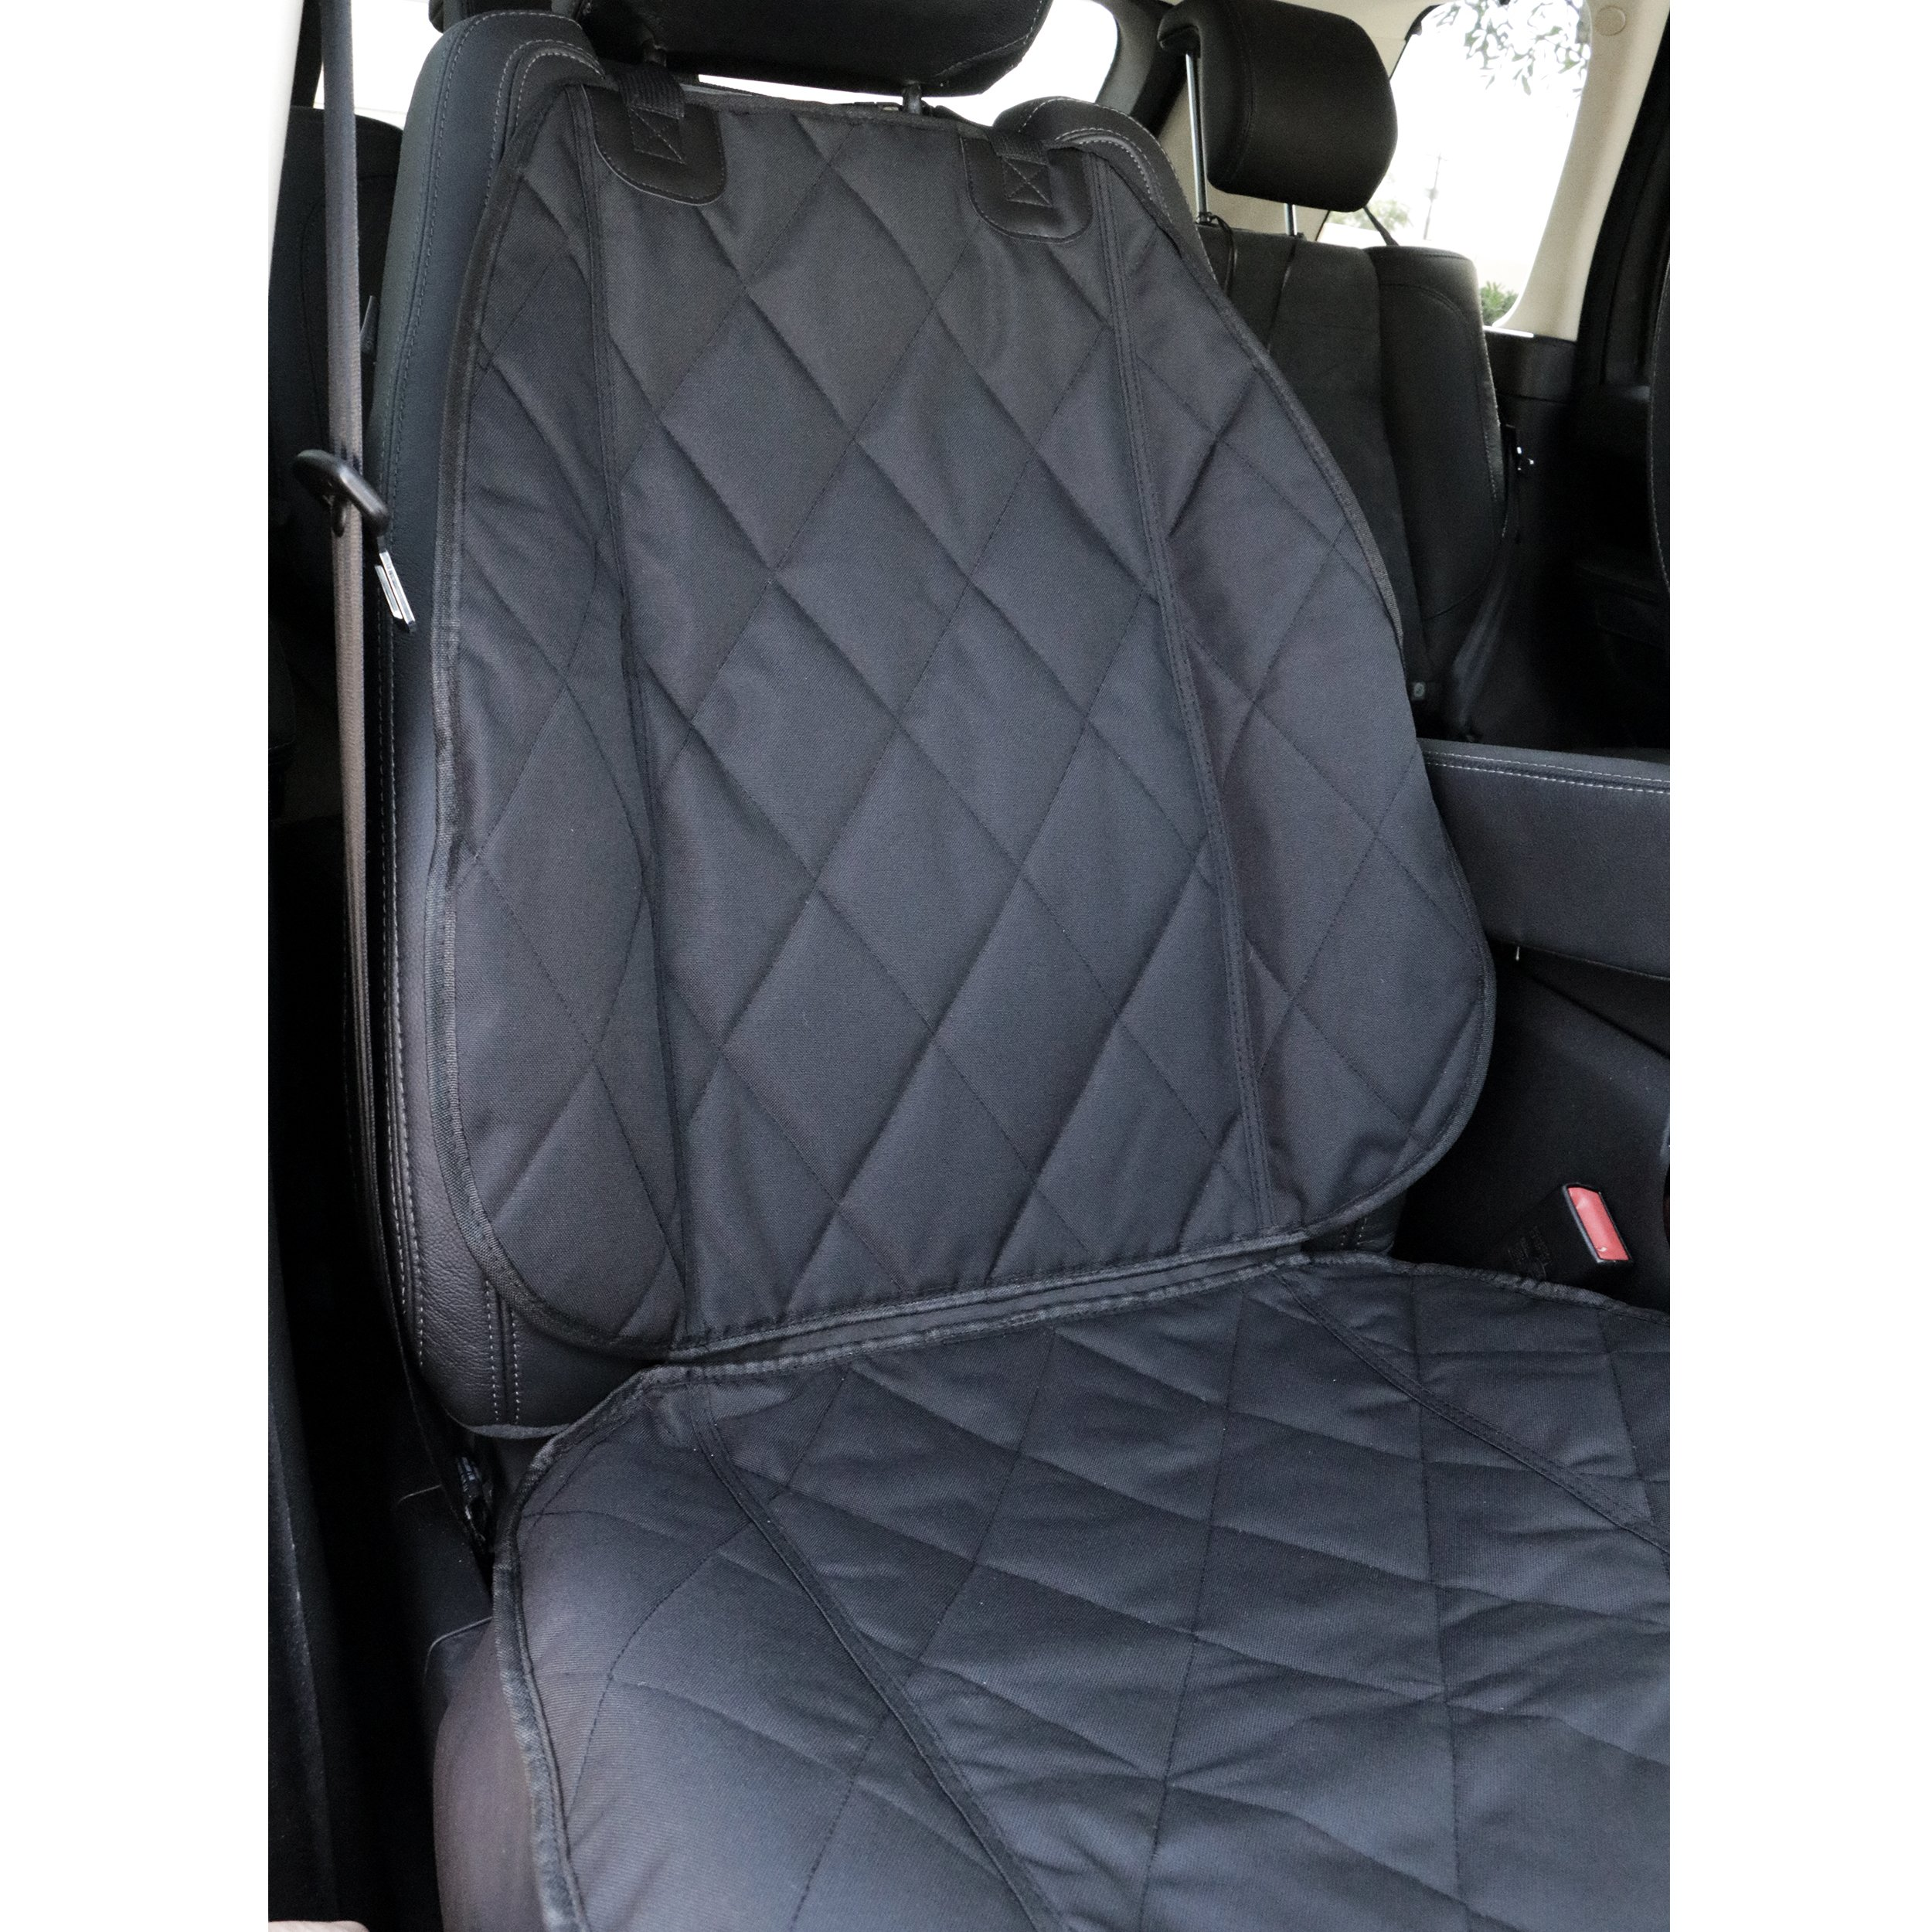 BarksBar Pet Front Seat Cover for Cars - Black, WaterProof & Nonslip Backing by BarksBar (Image #3)